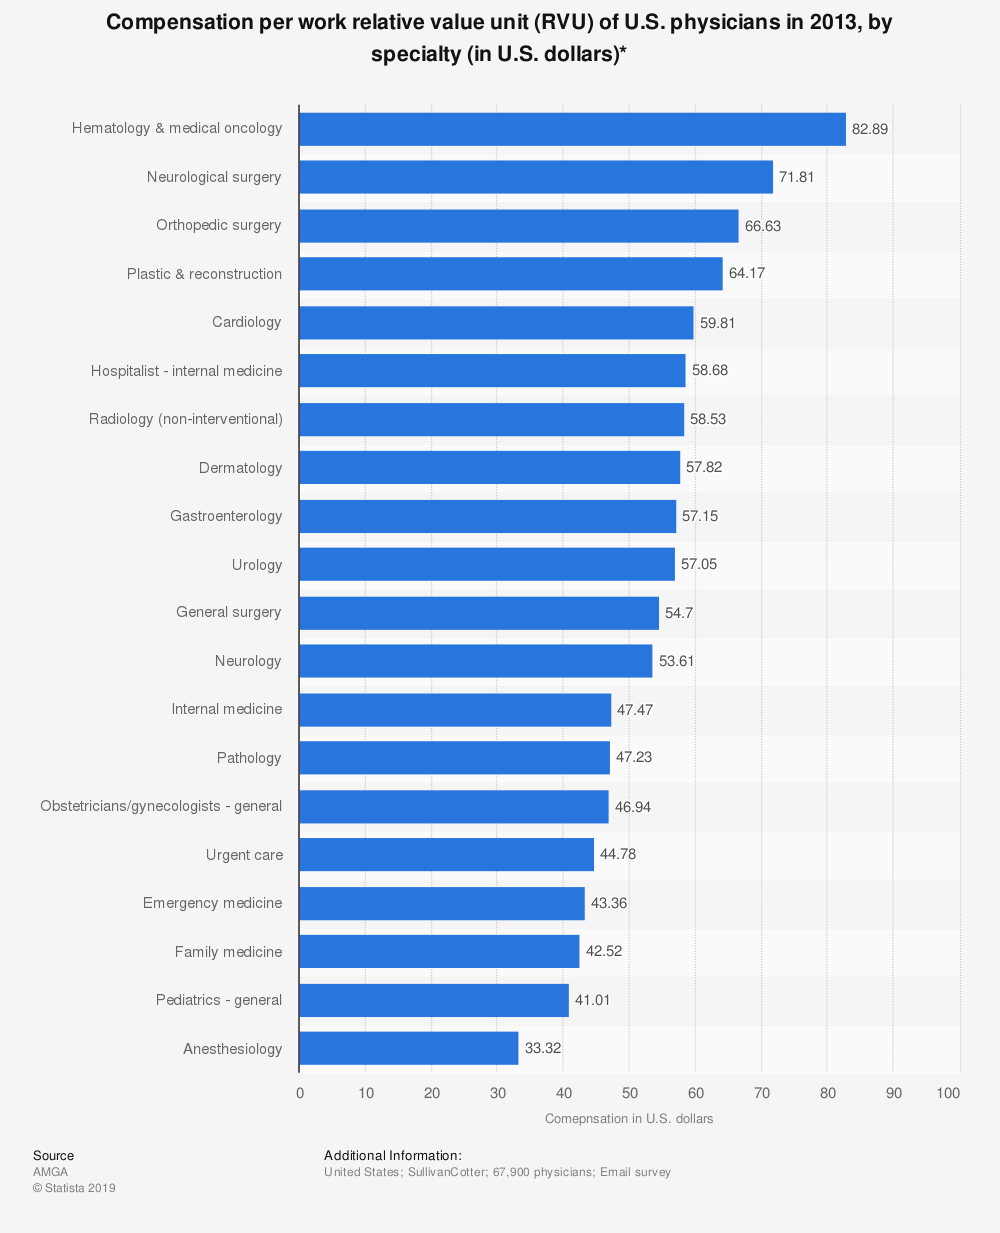 U.S. physicians - dollars per RVU by specialty 2013 | Statista